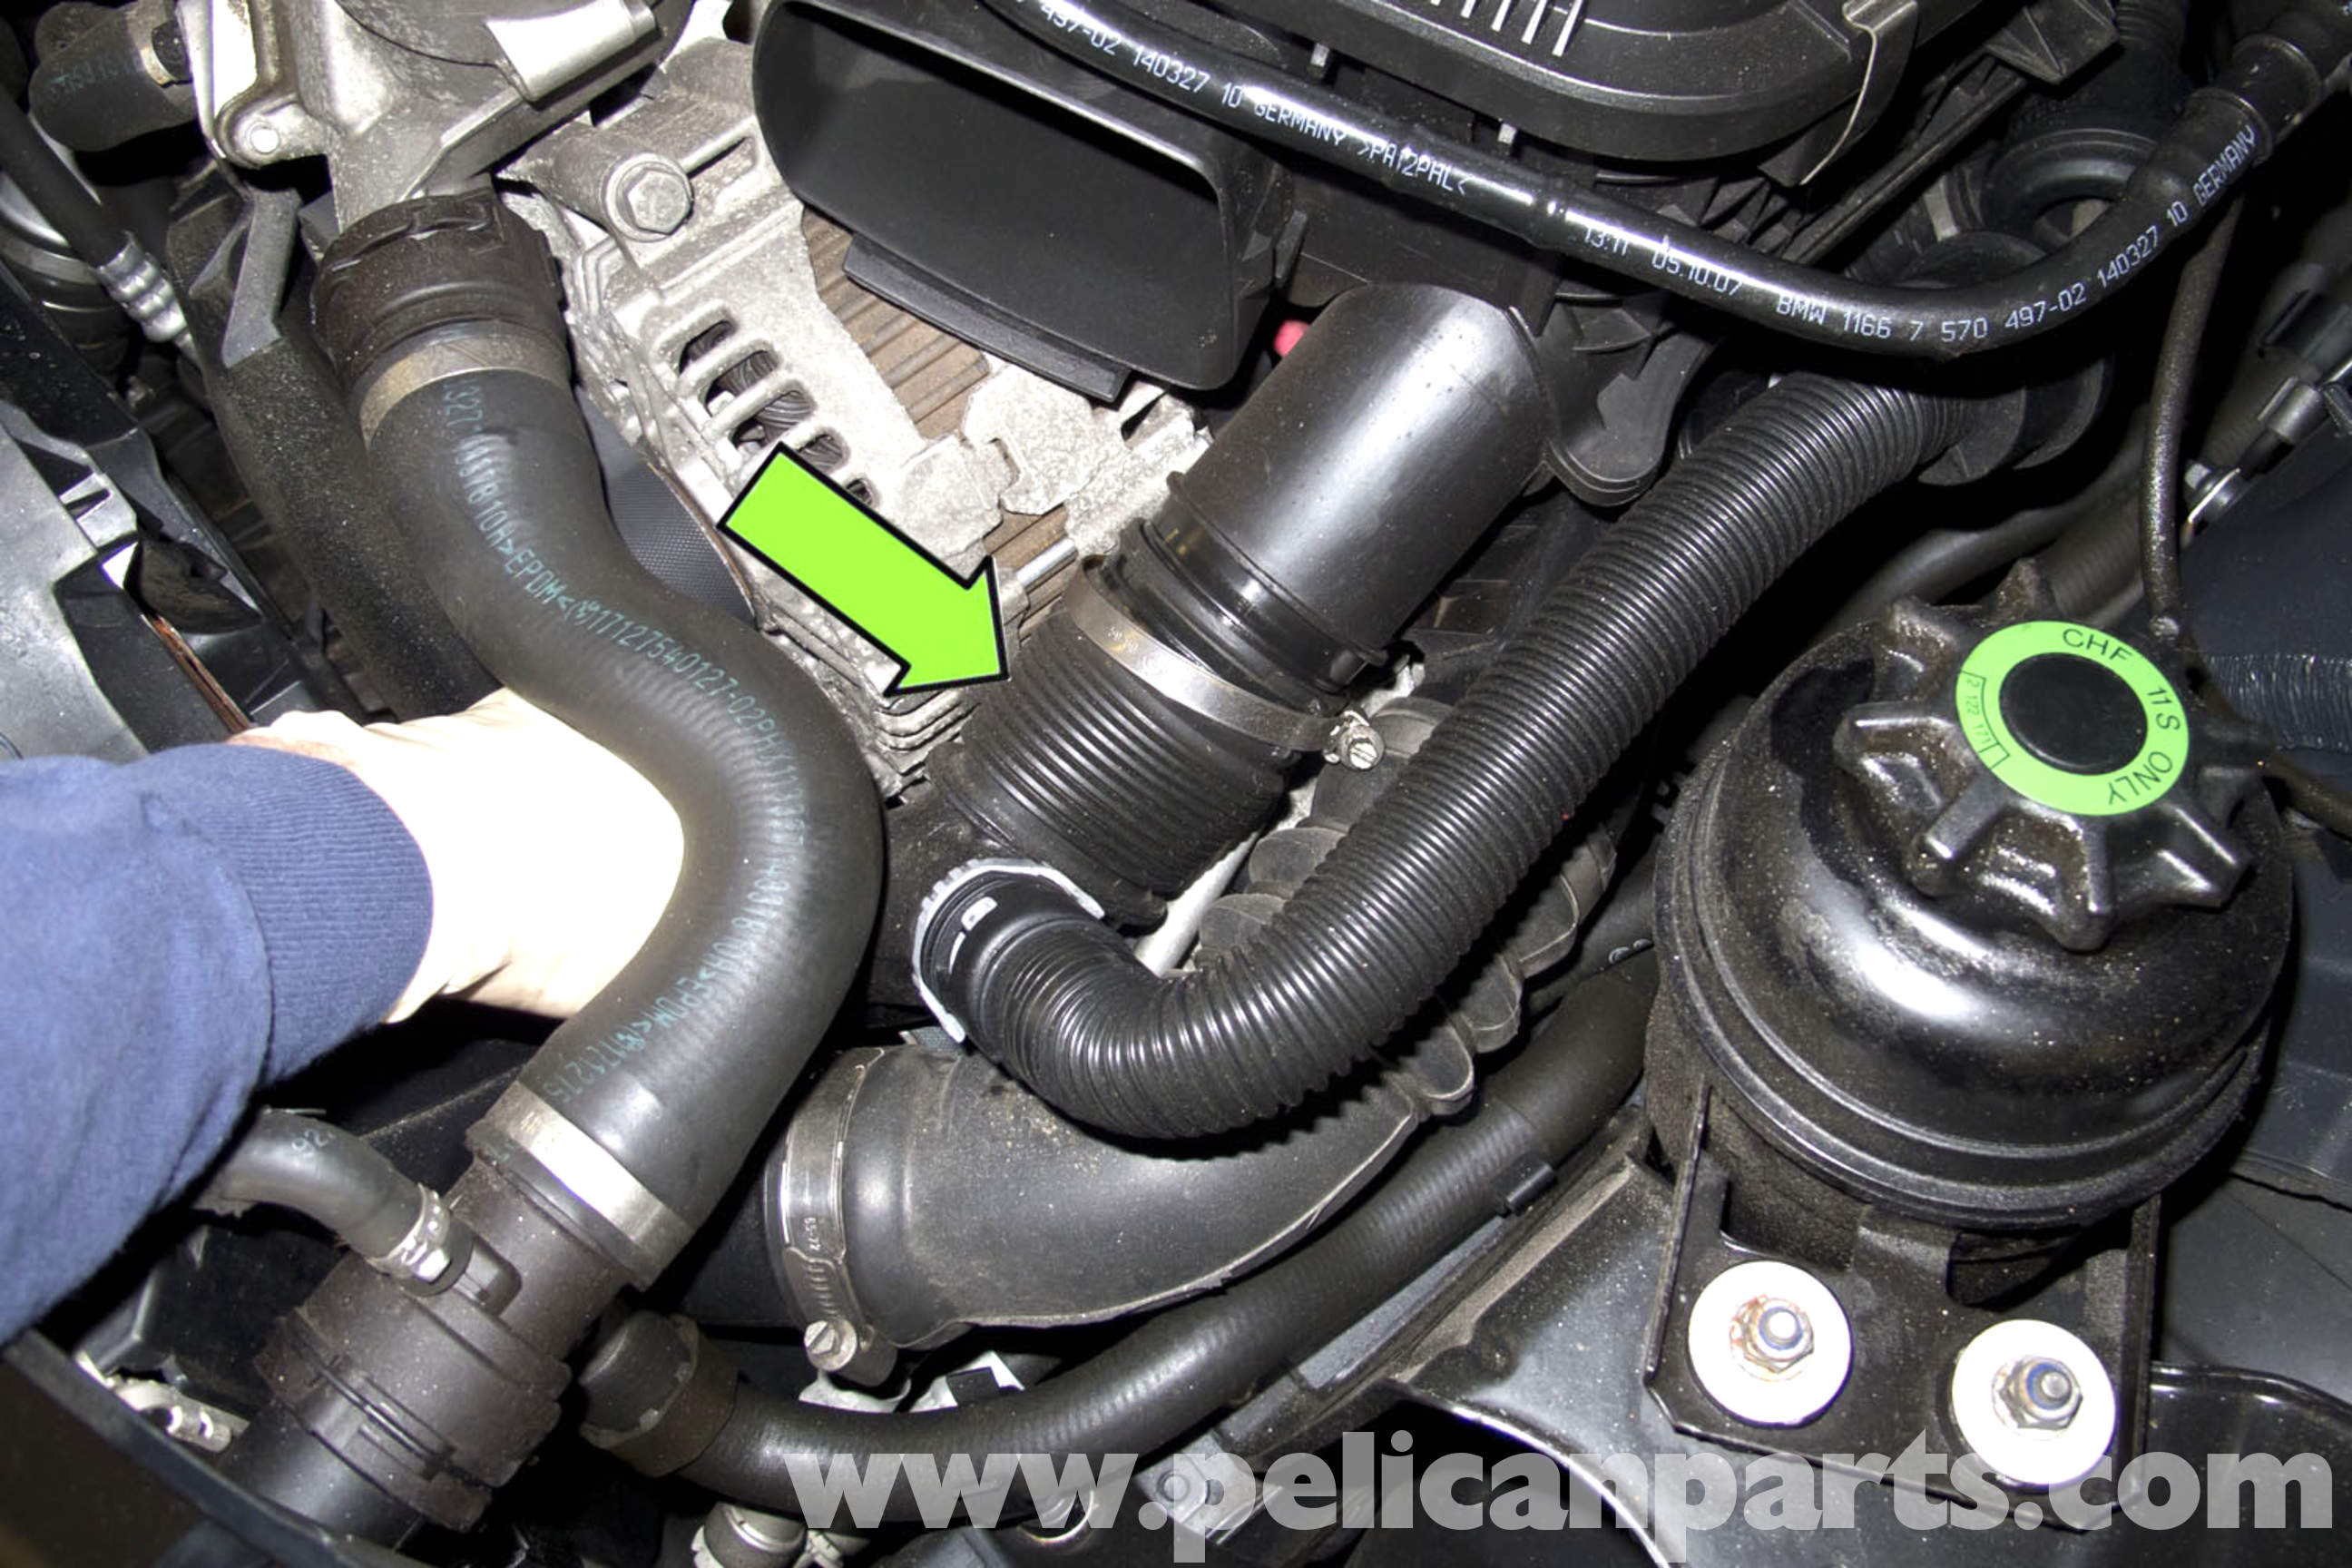 pic18 bmw e90 knock sensor replacement e91, e92, e93 pelican parts BMW E90 Music-Diagram at mr168.co